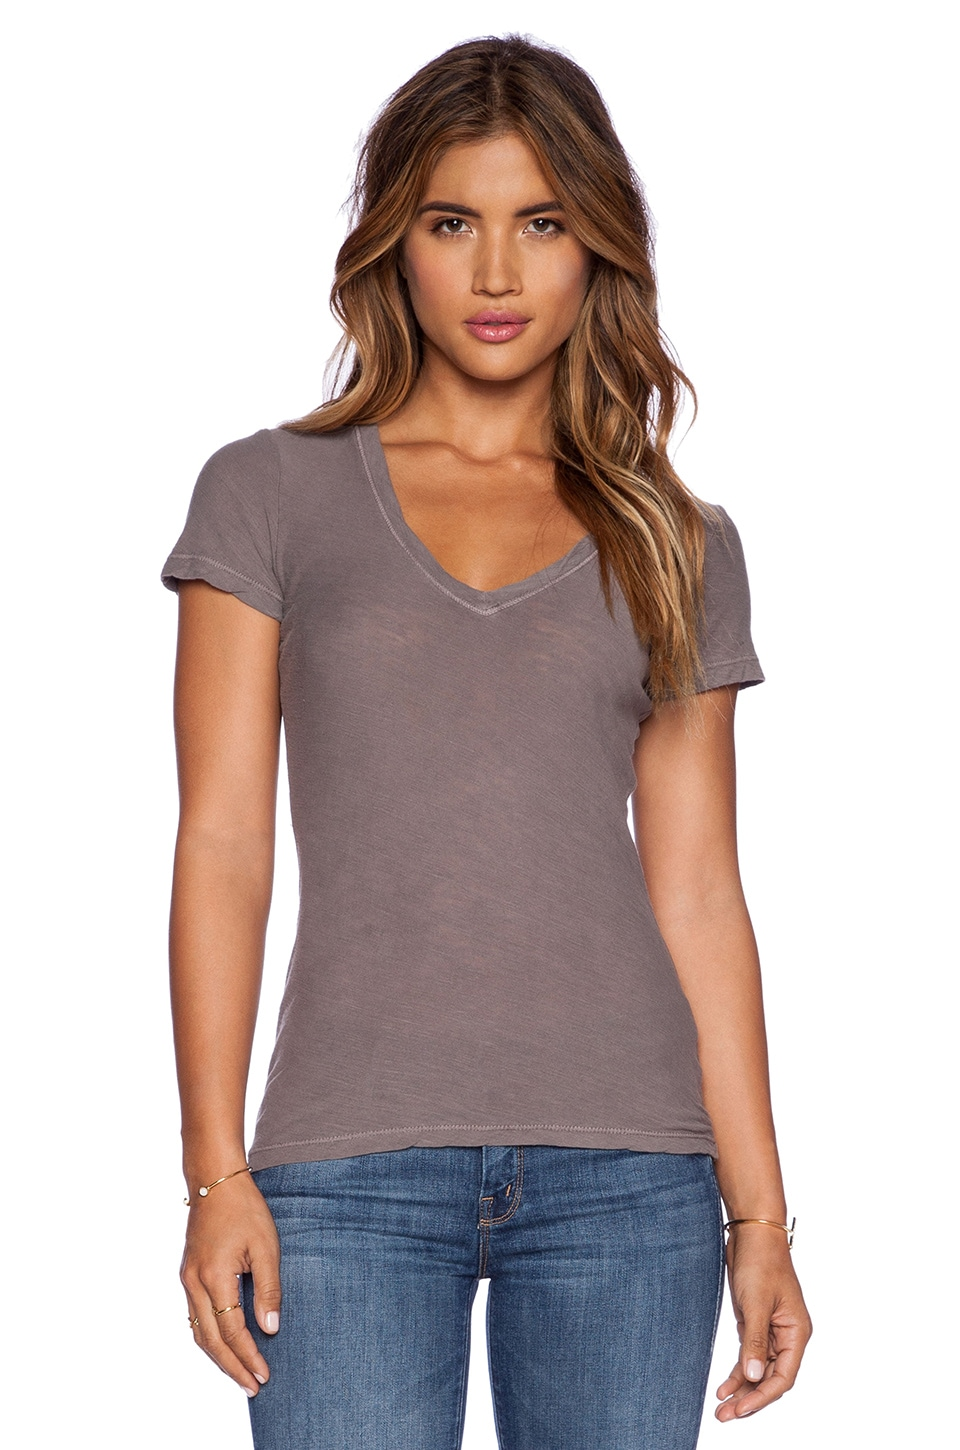 James Perse Casual Tee in Burro